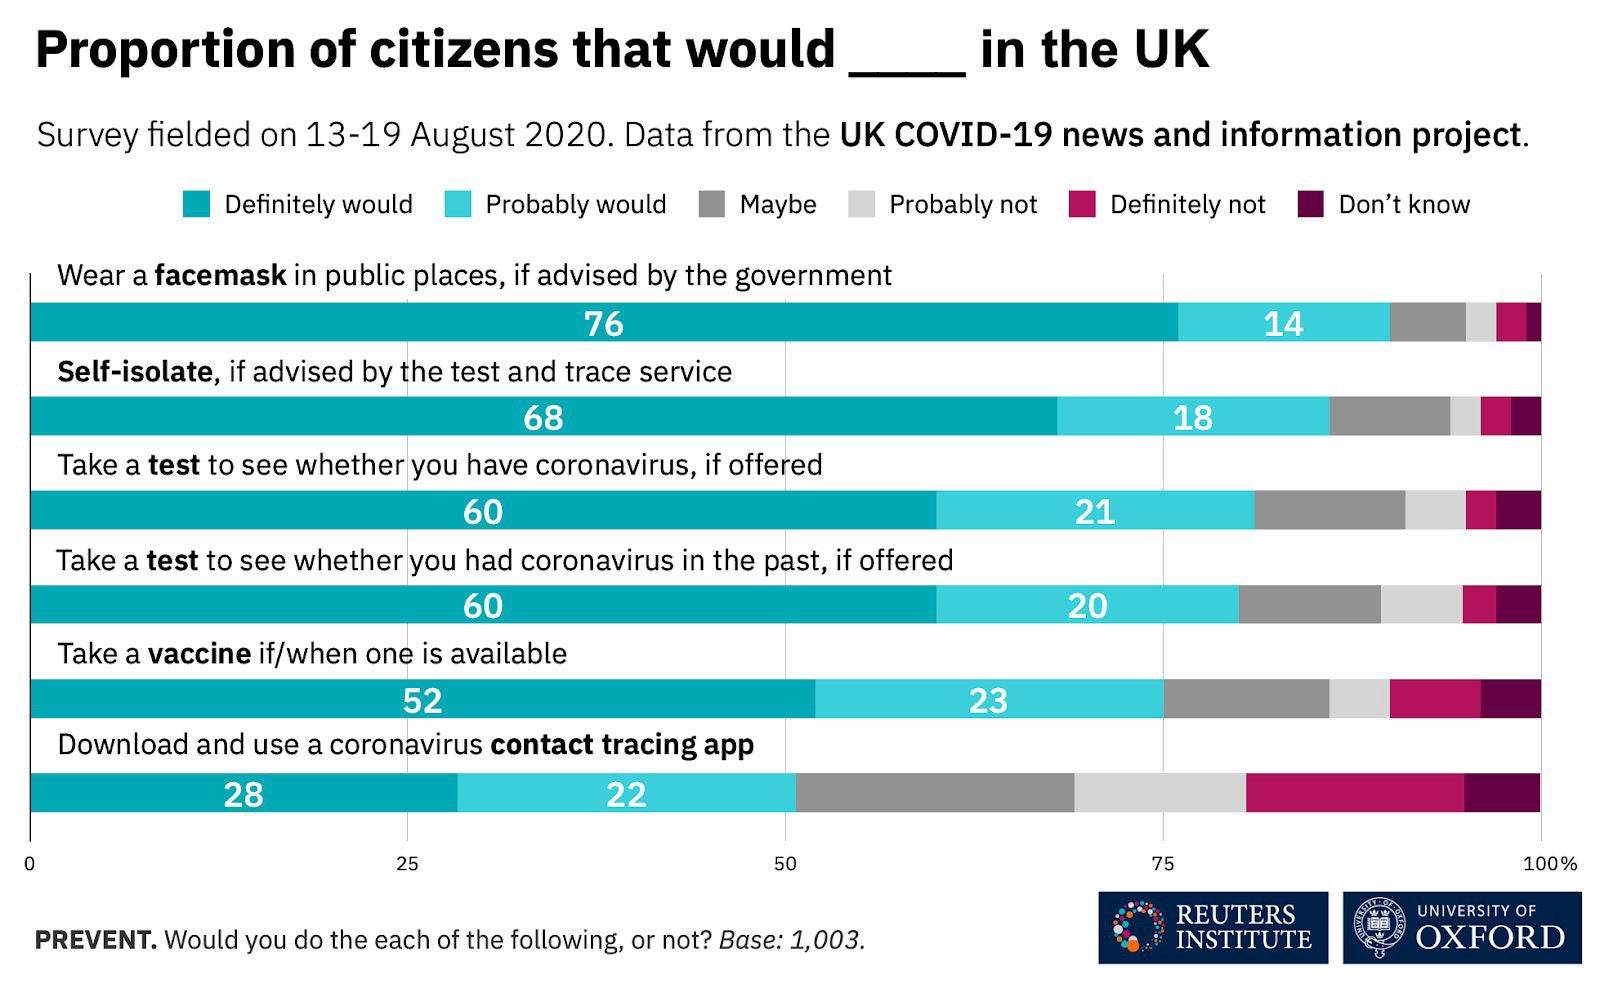 The proportion of UK citizens in August who said they would take specific actions related to coronavirus, including wear a facemask, self-isolate, take a test, take a vaccine or use a contact tracing app.